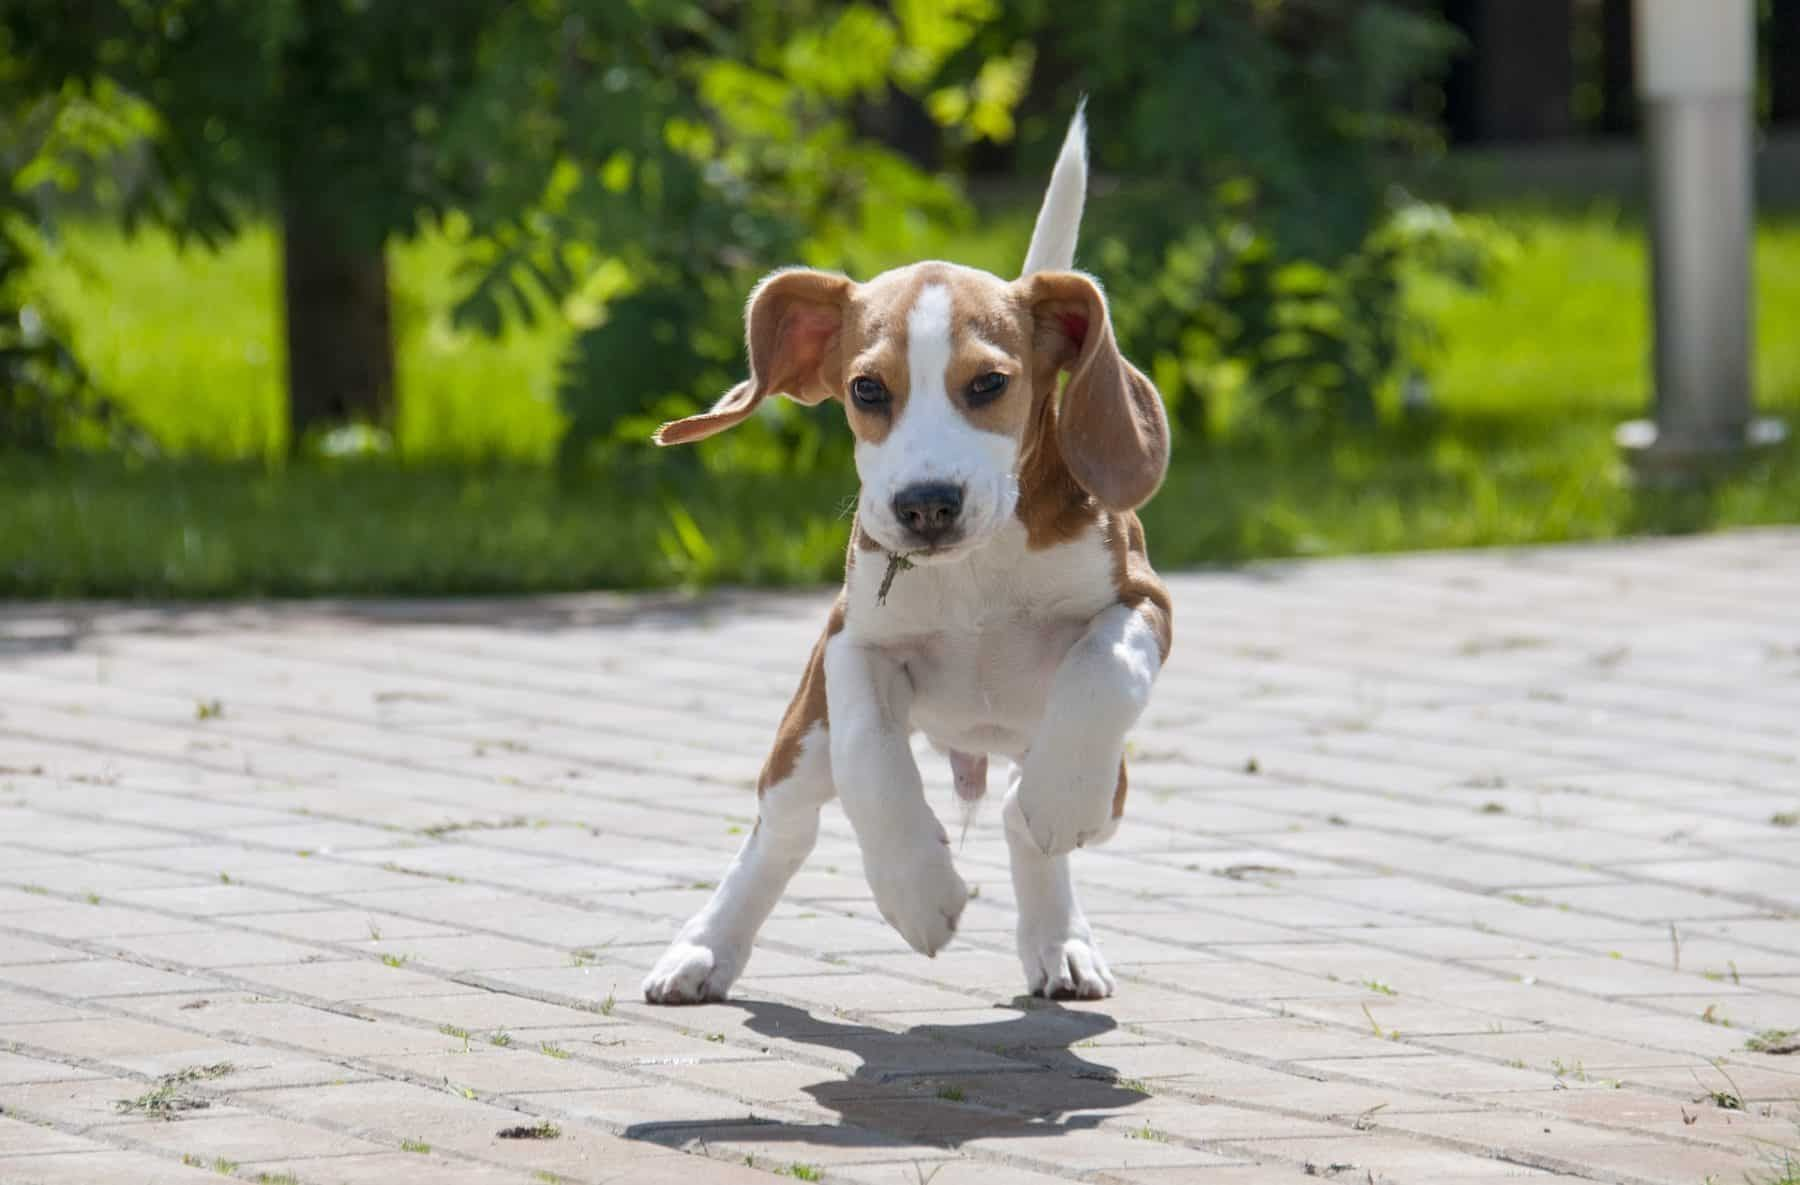 Beagle Dog Beagle Dog For Sale Beagles For Sale Online Beagle